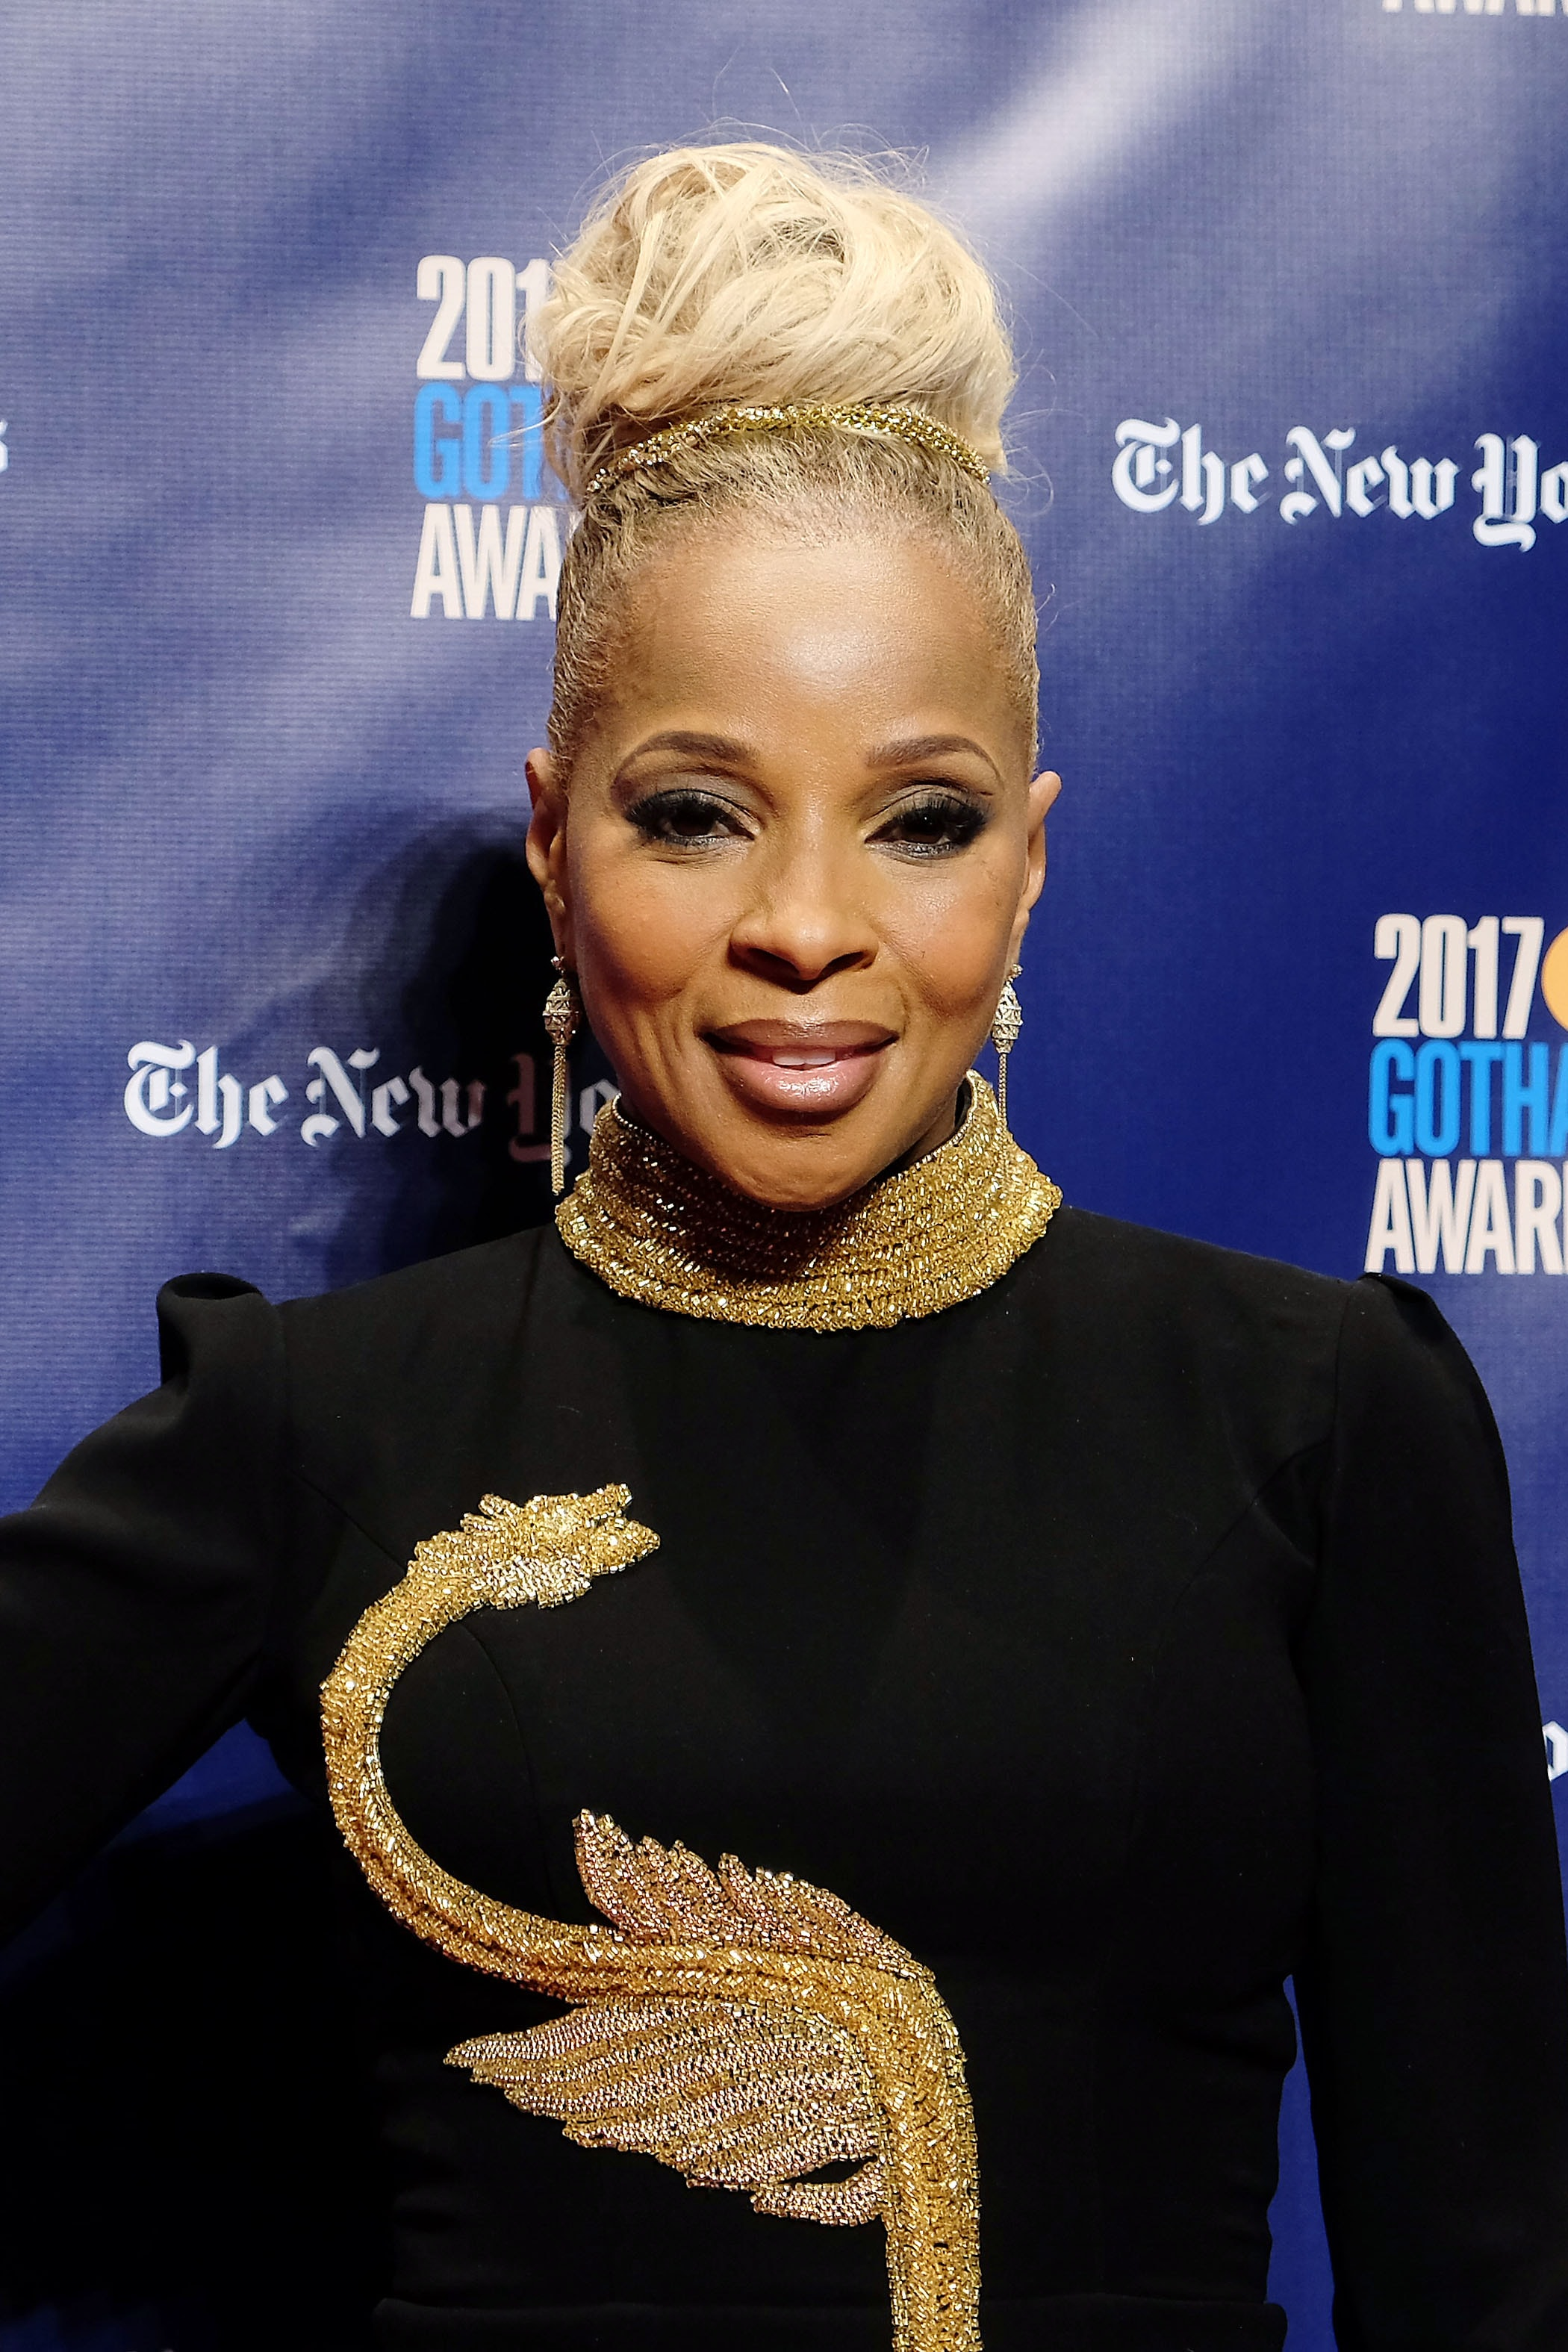 Mary J Blige at wearing a high bun hairstyle on the red carpet